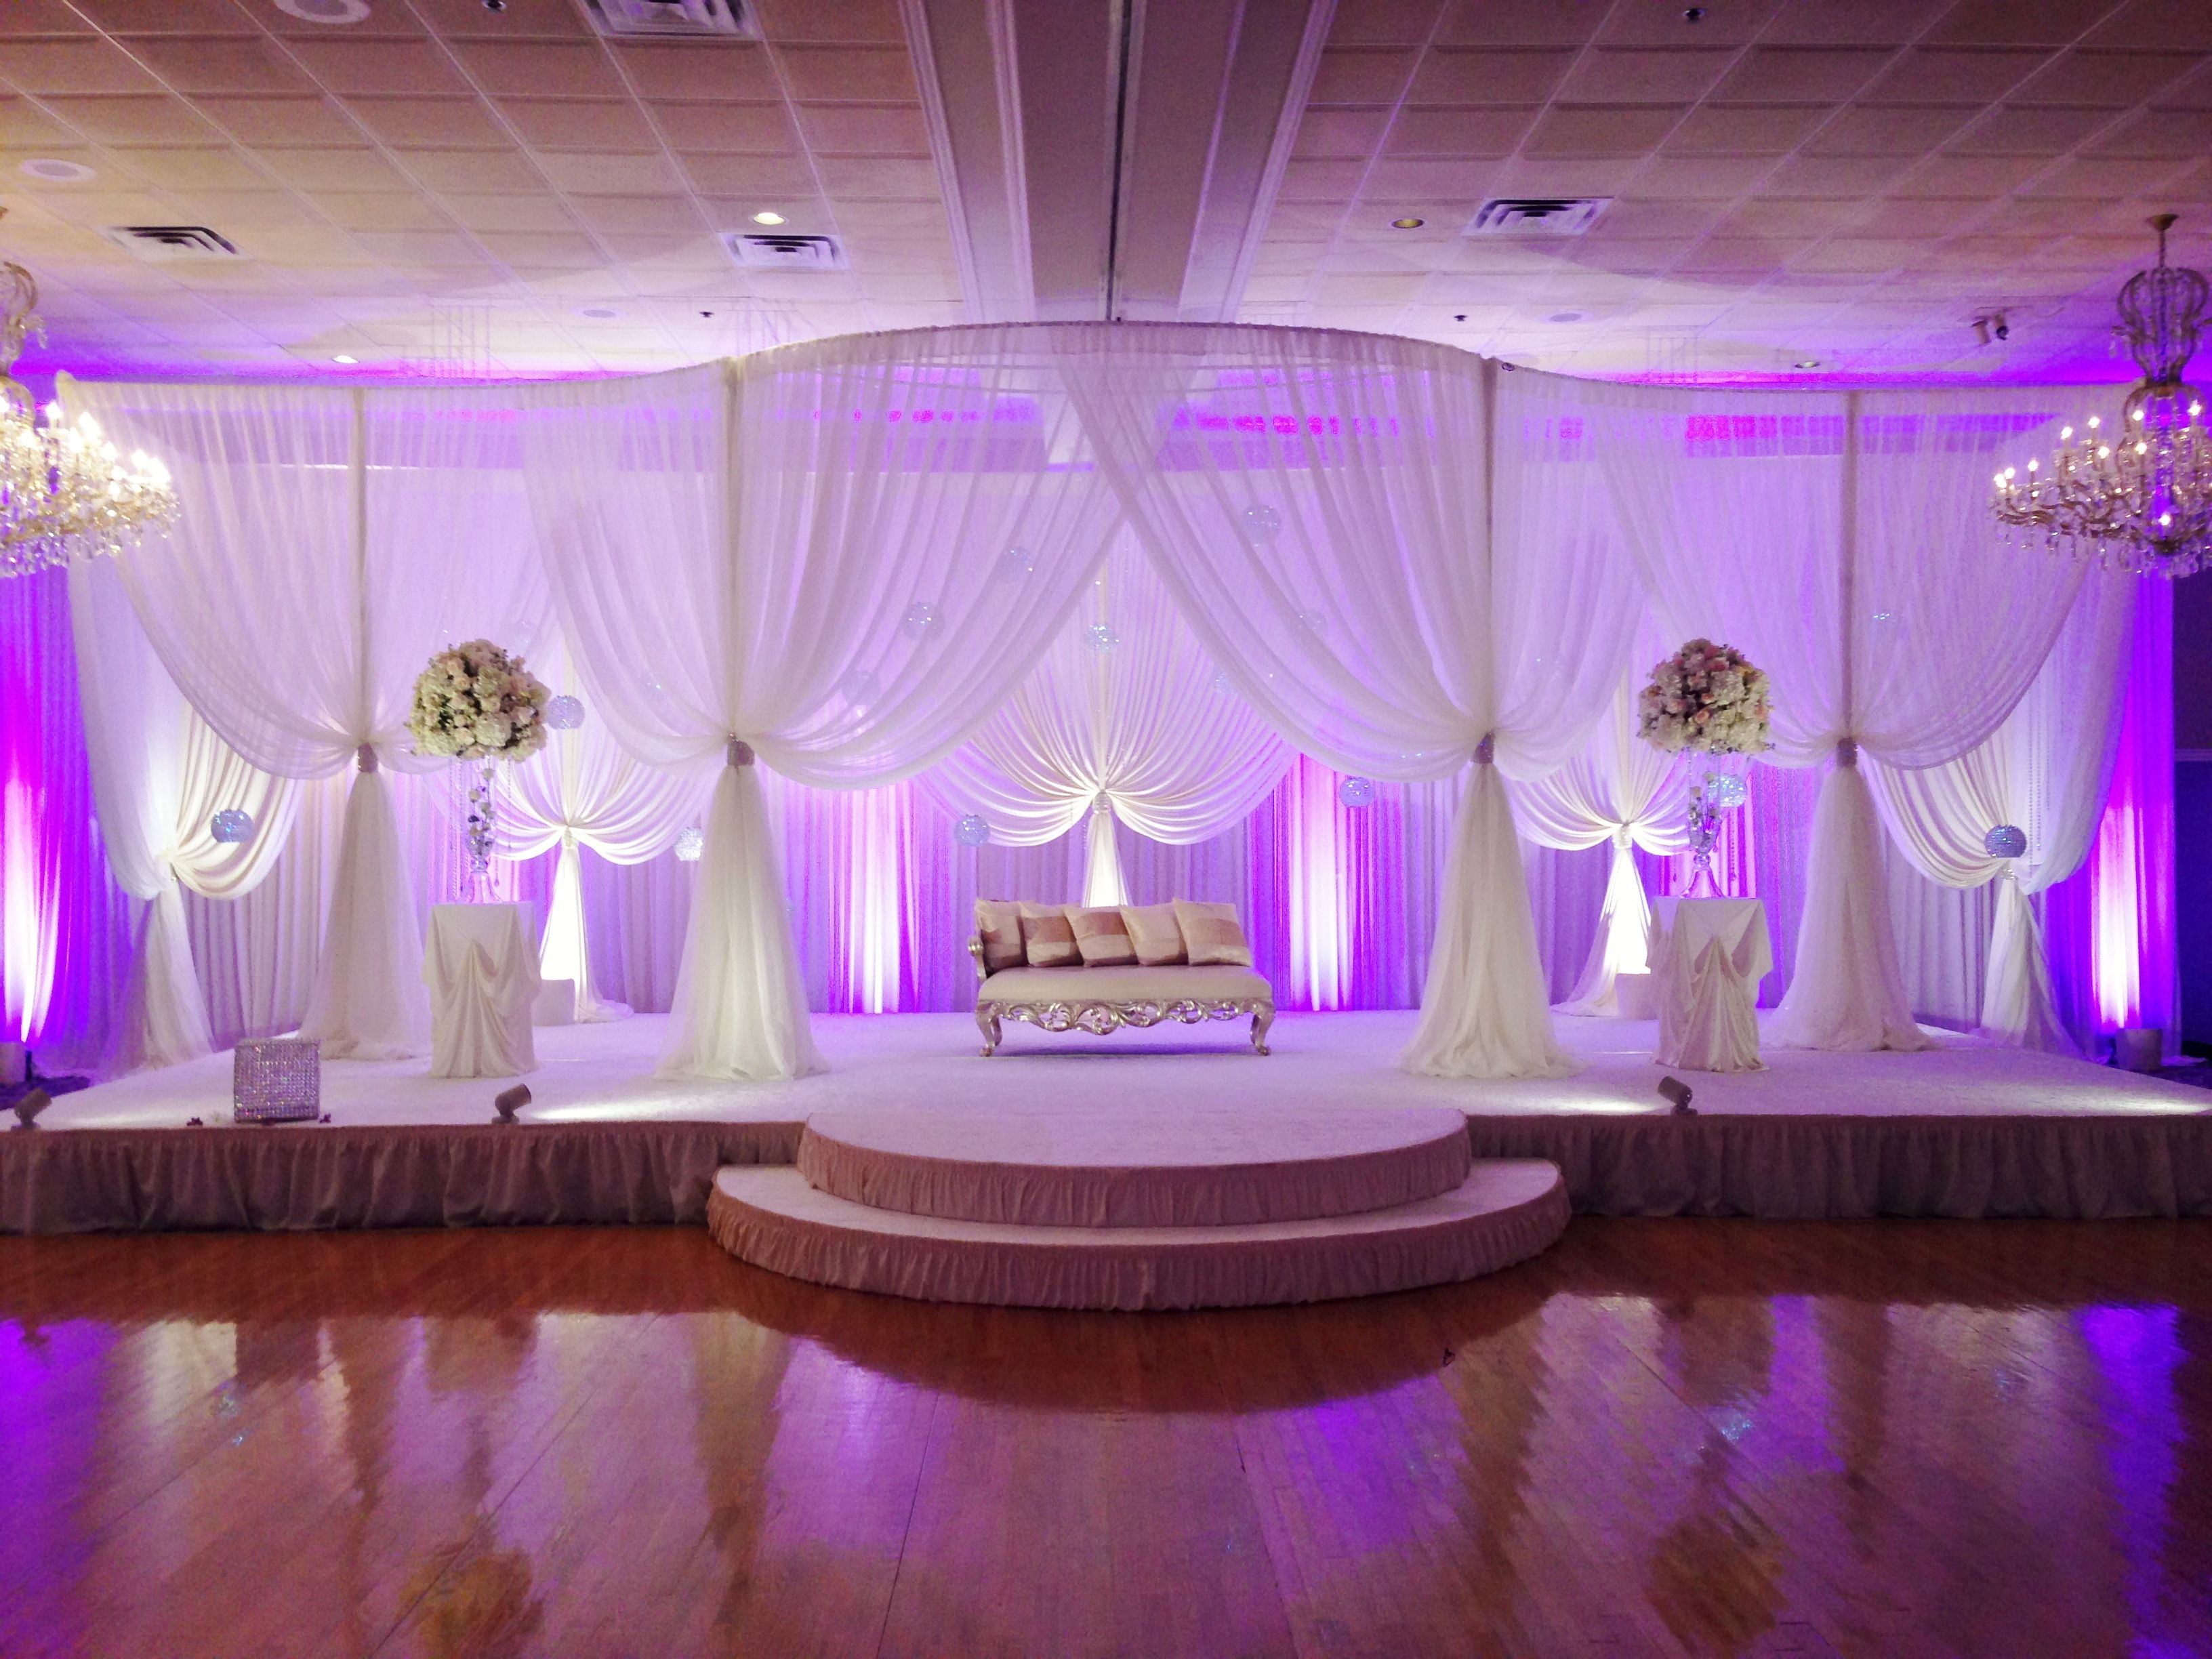 Nigerian wedding stage decoration  Pin by Magalie Leger on Drapes and Aisles decor  Pinterest